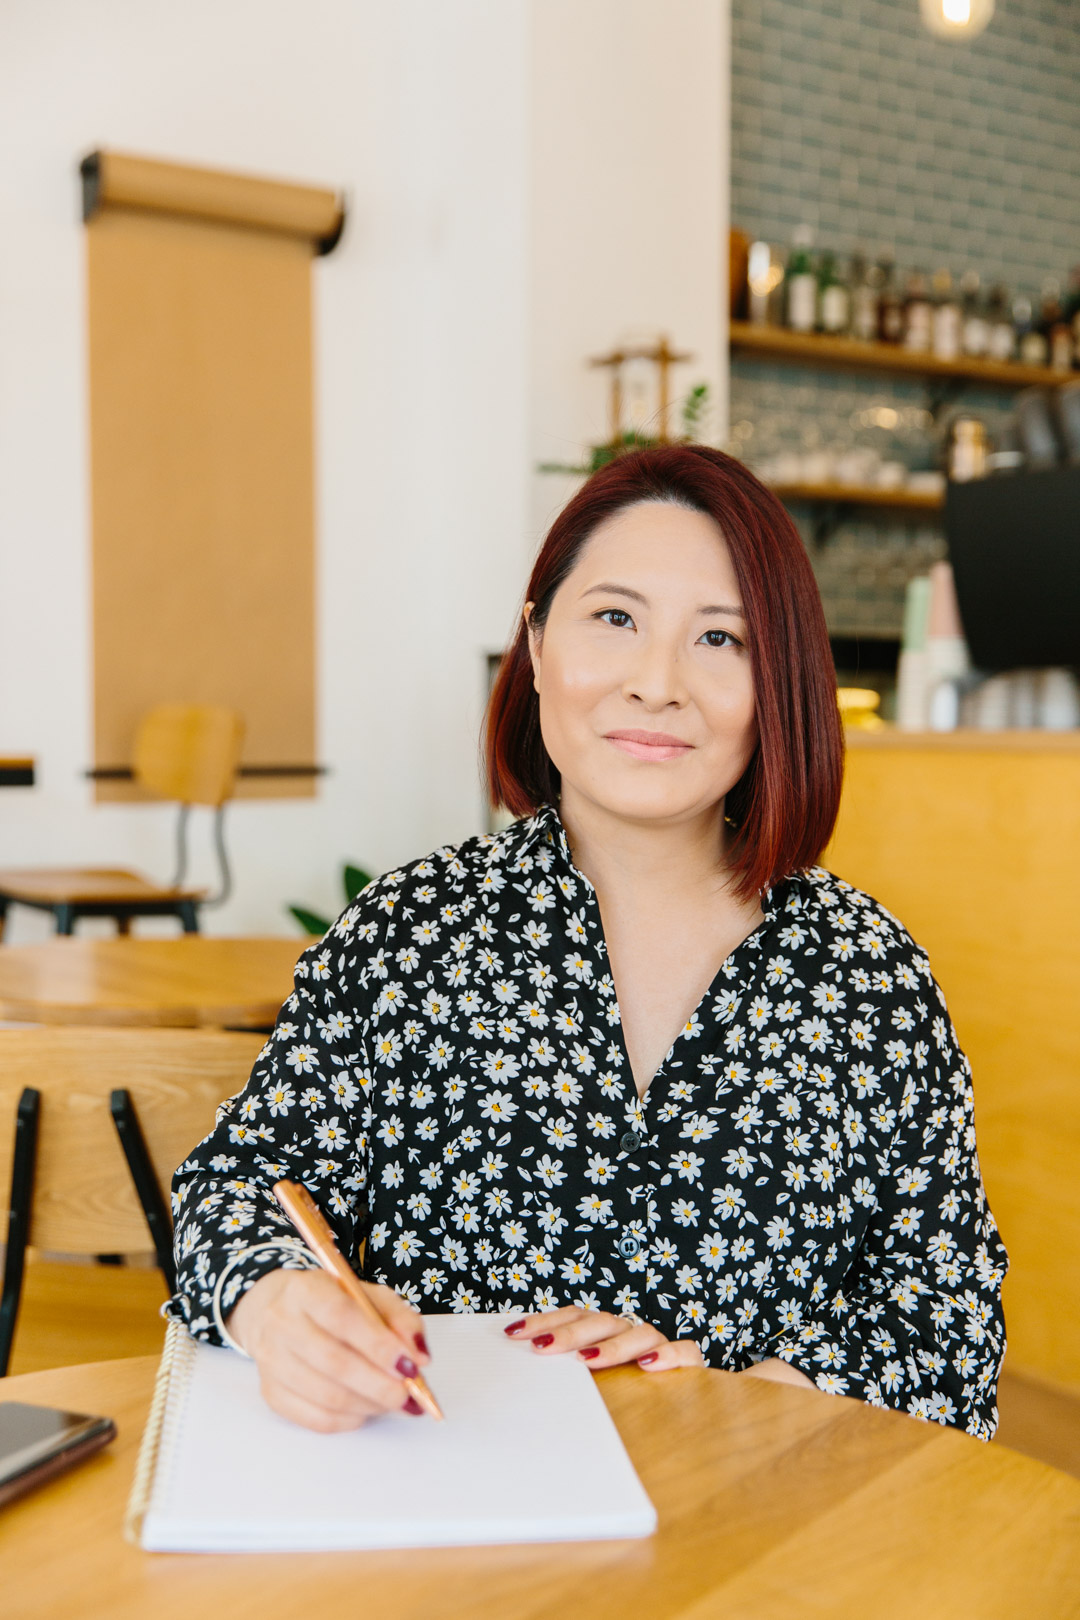 Meet Vanessa Choi from Make Marketing Yours